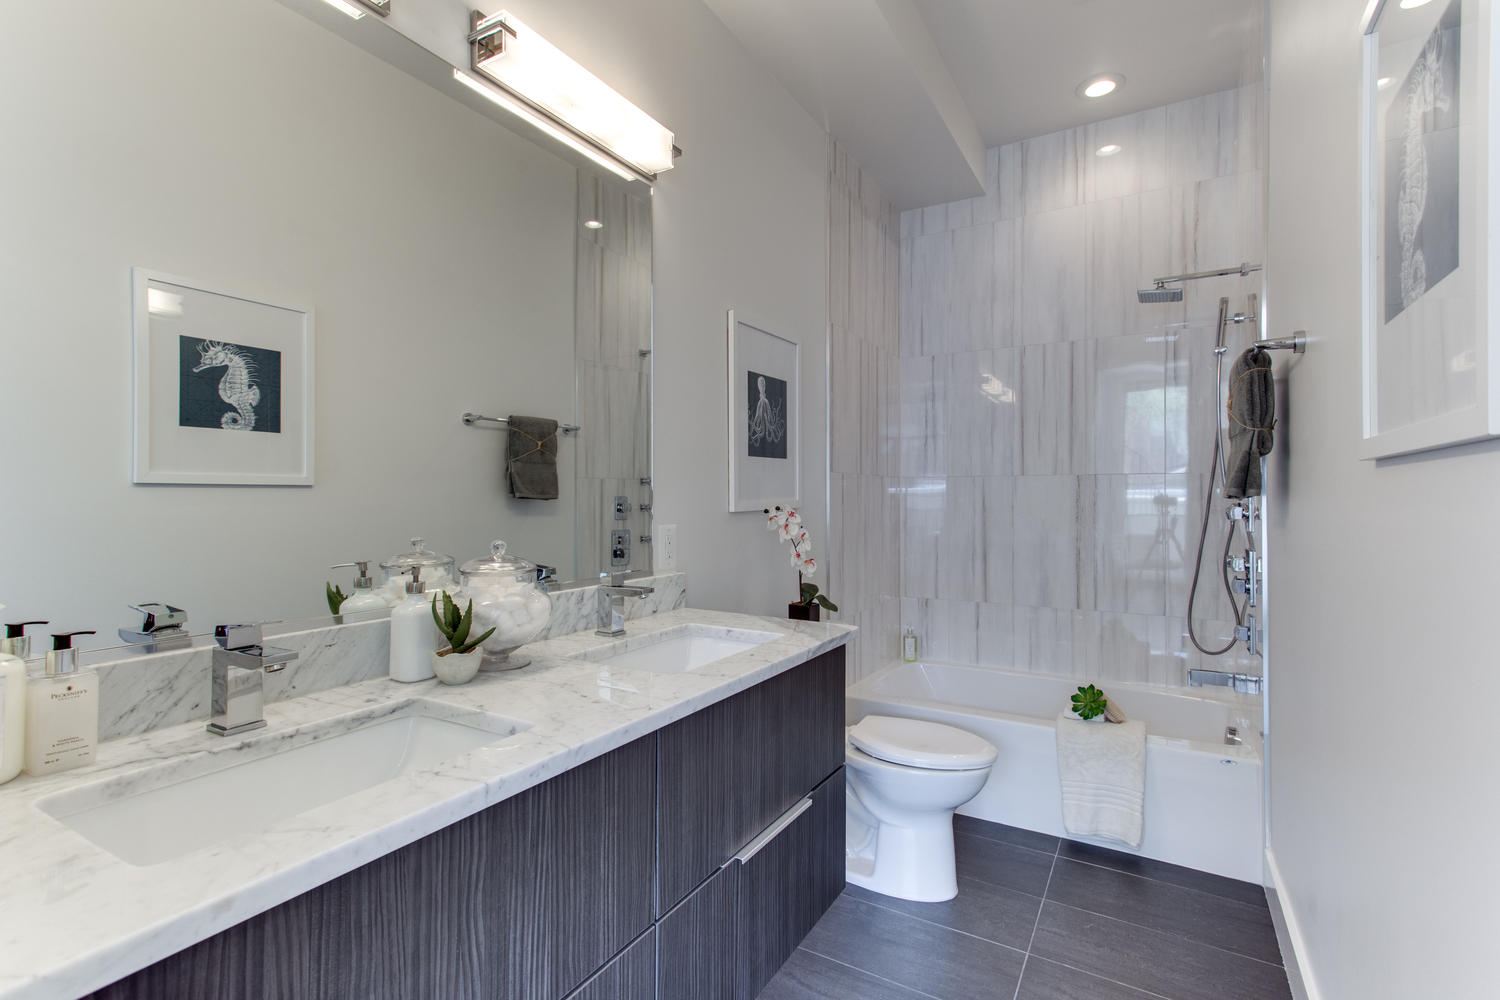 1524 Ogden St NW Unit 2-large-055-55-Bathroom-1500x1000-72dpi.jpg